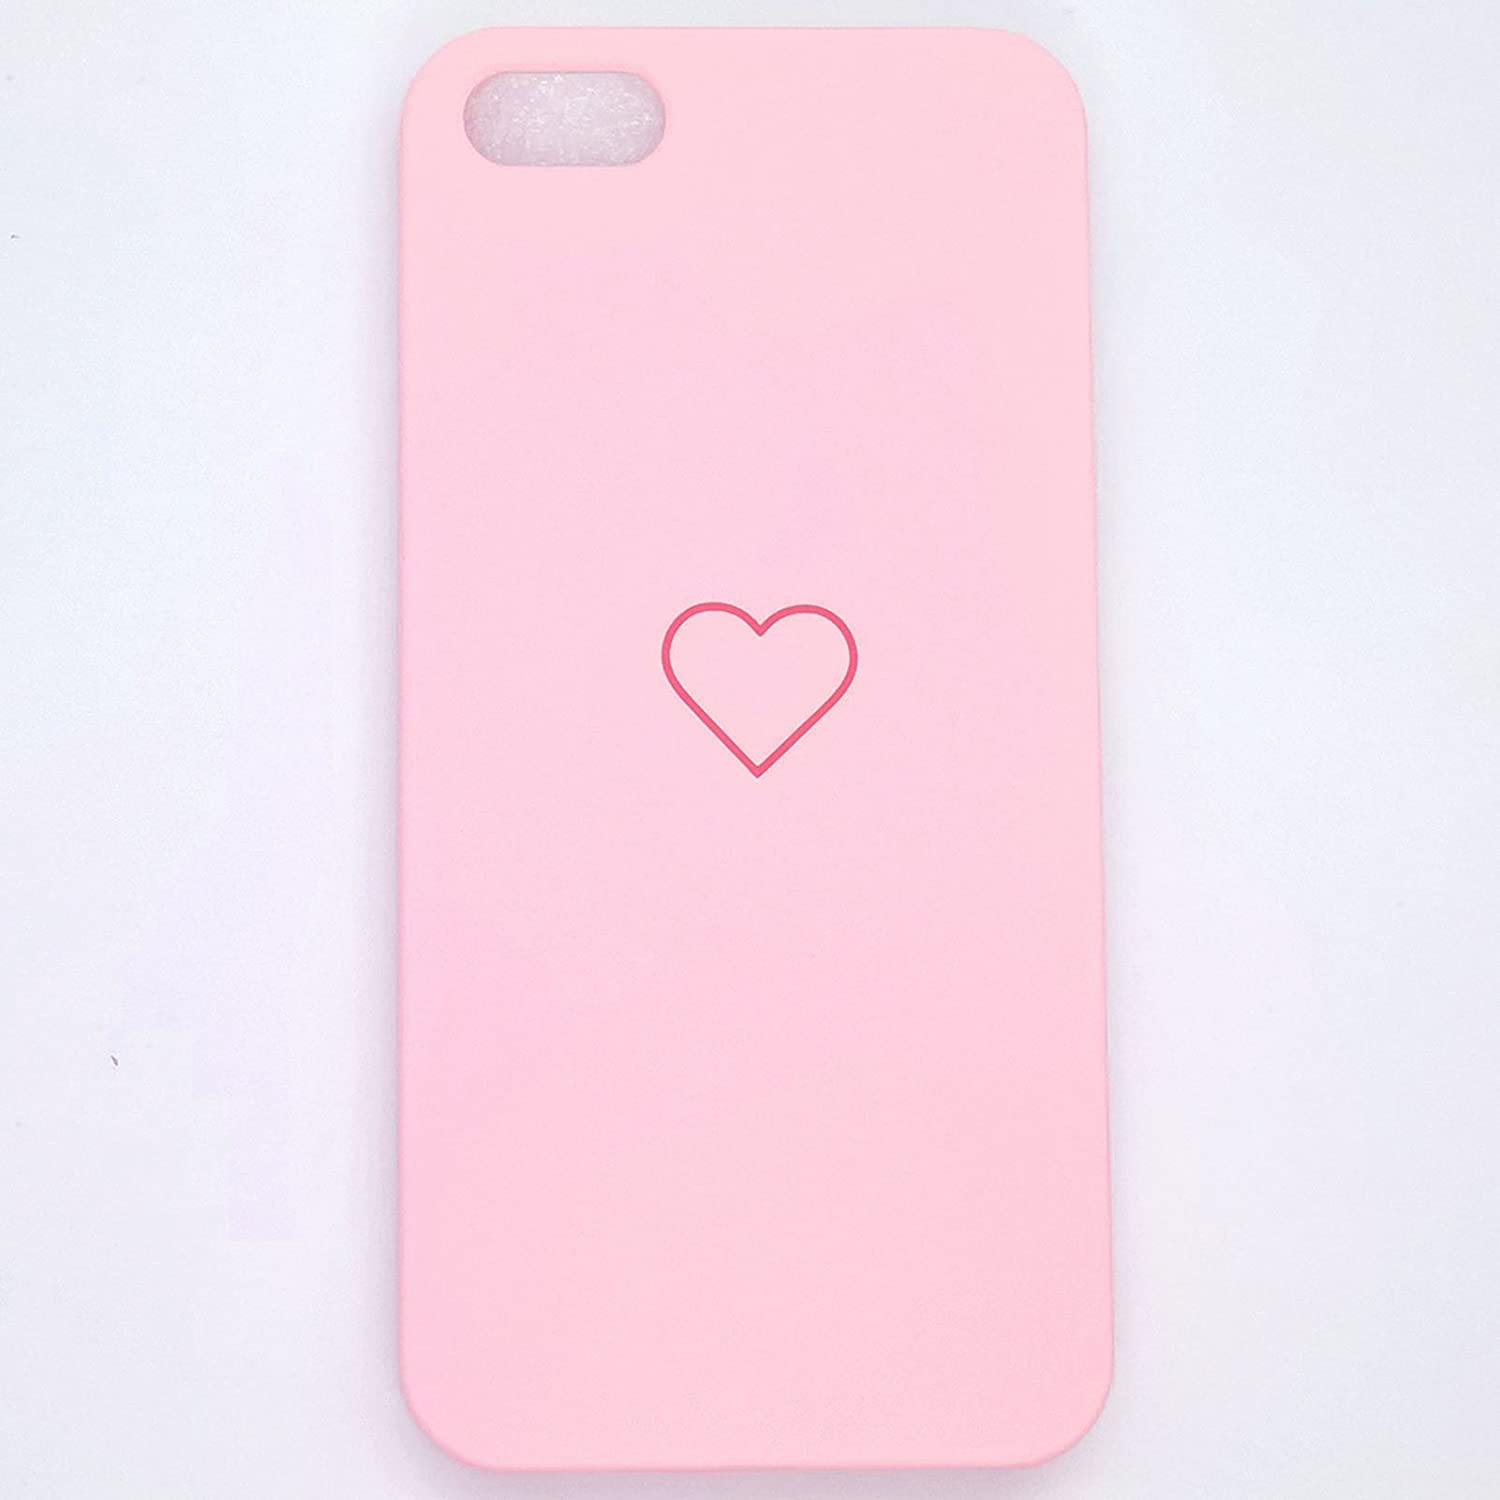 Apple iPhone SE Case, iPhone 5s Case, iPhone 5 Luxury Cute Heart Shockproof Slim PC Phone Case Cover Skin for Apple iPhone SE 5s 5 (Pink, iPhone SE 5s 5)